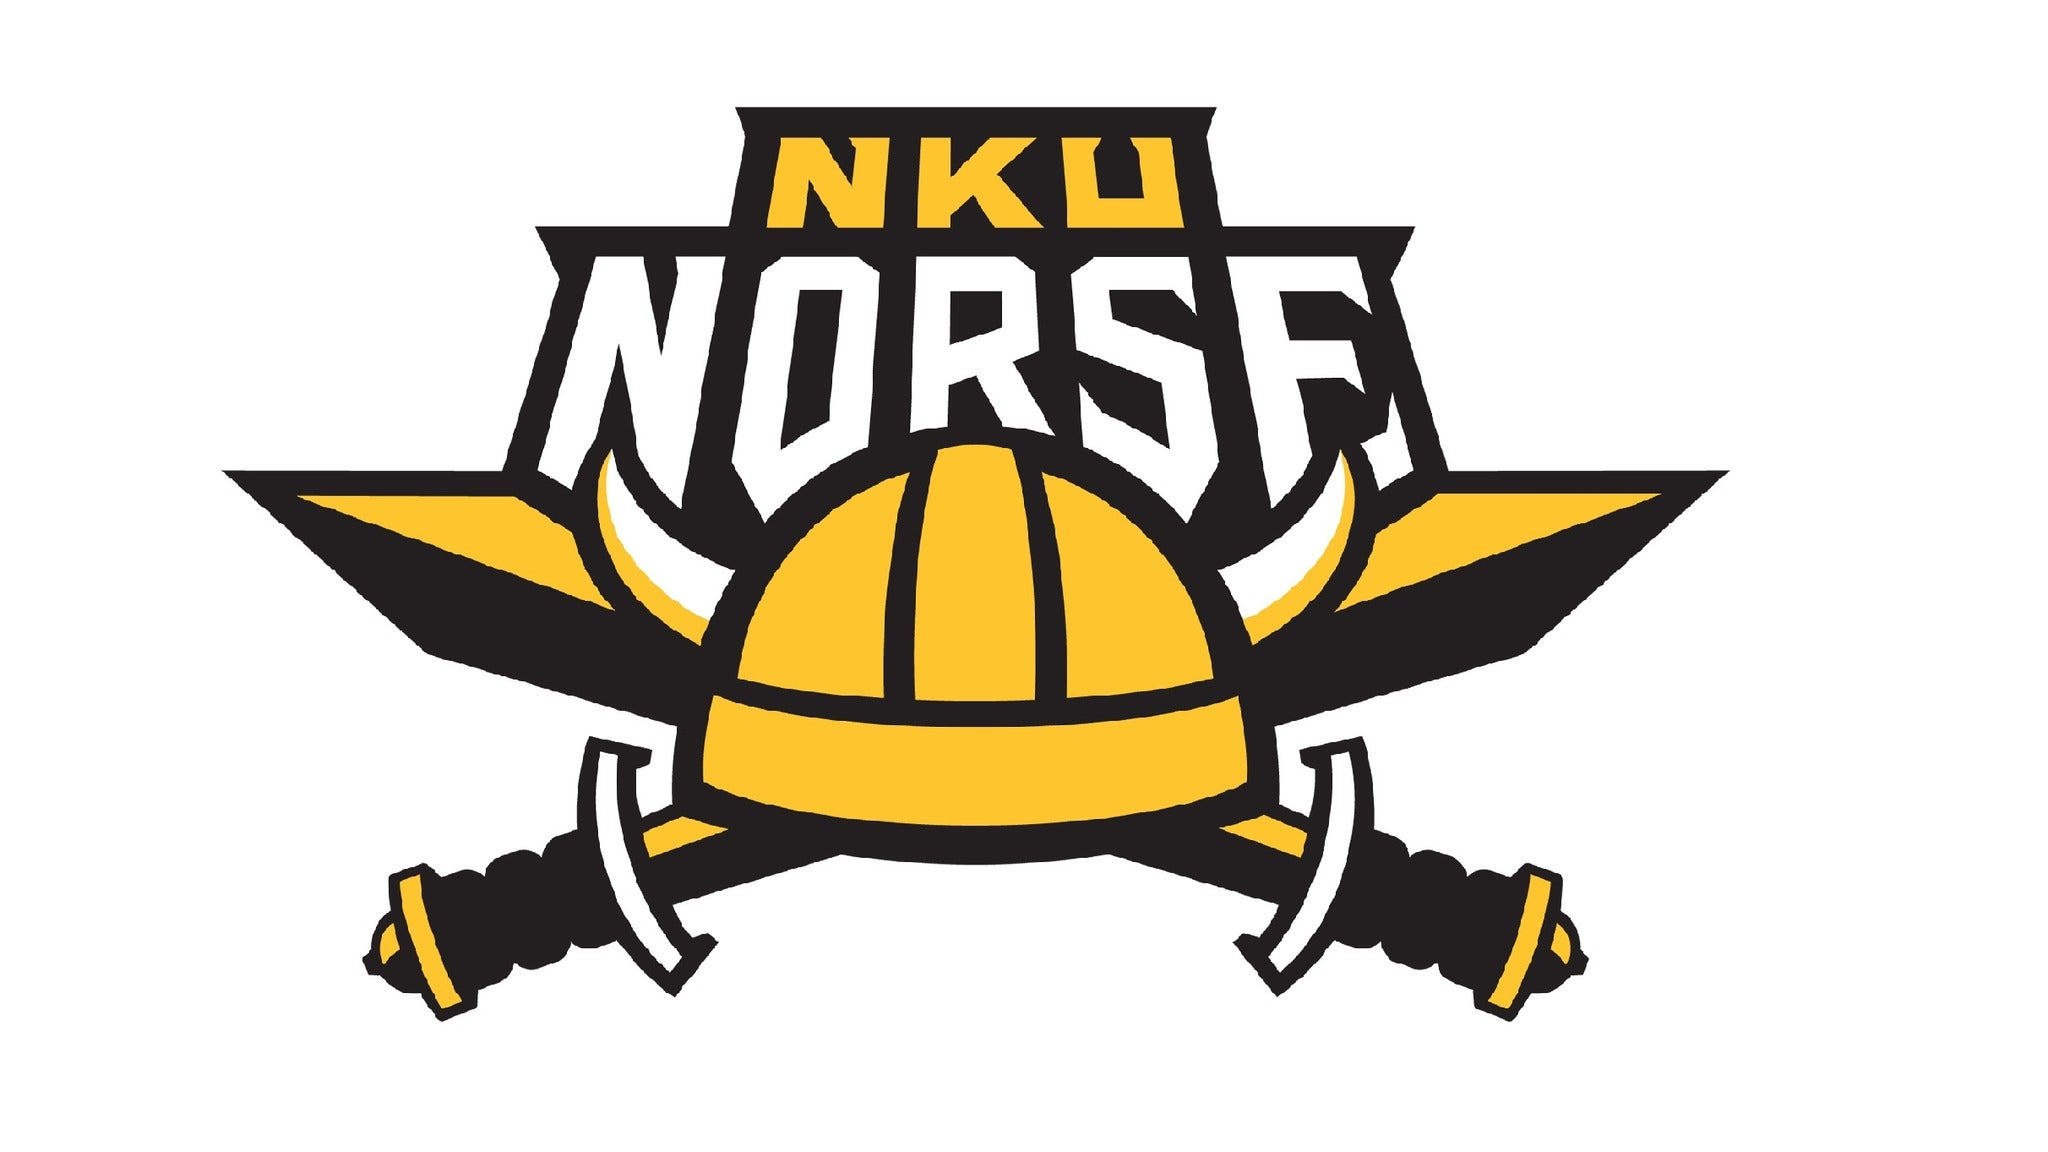 Northern Kentucky Norse Mens Basketball at BB&T Arena - Highland Heights, KY 41099